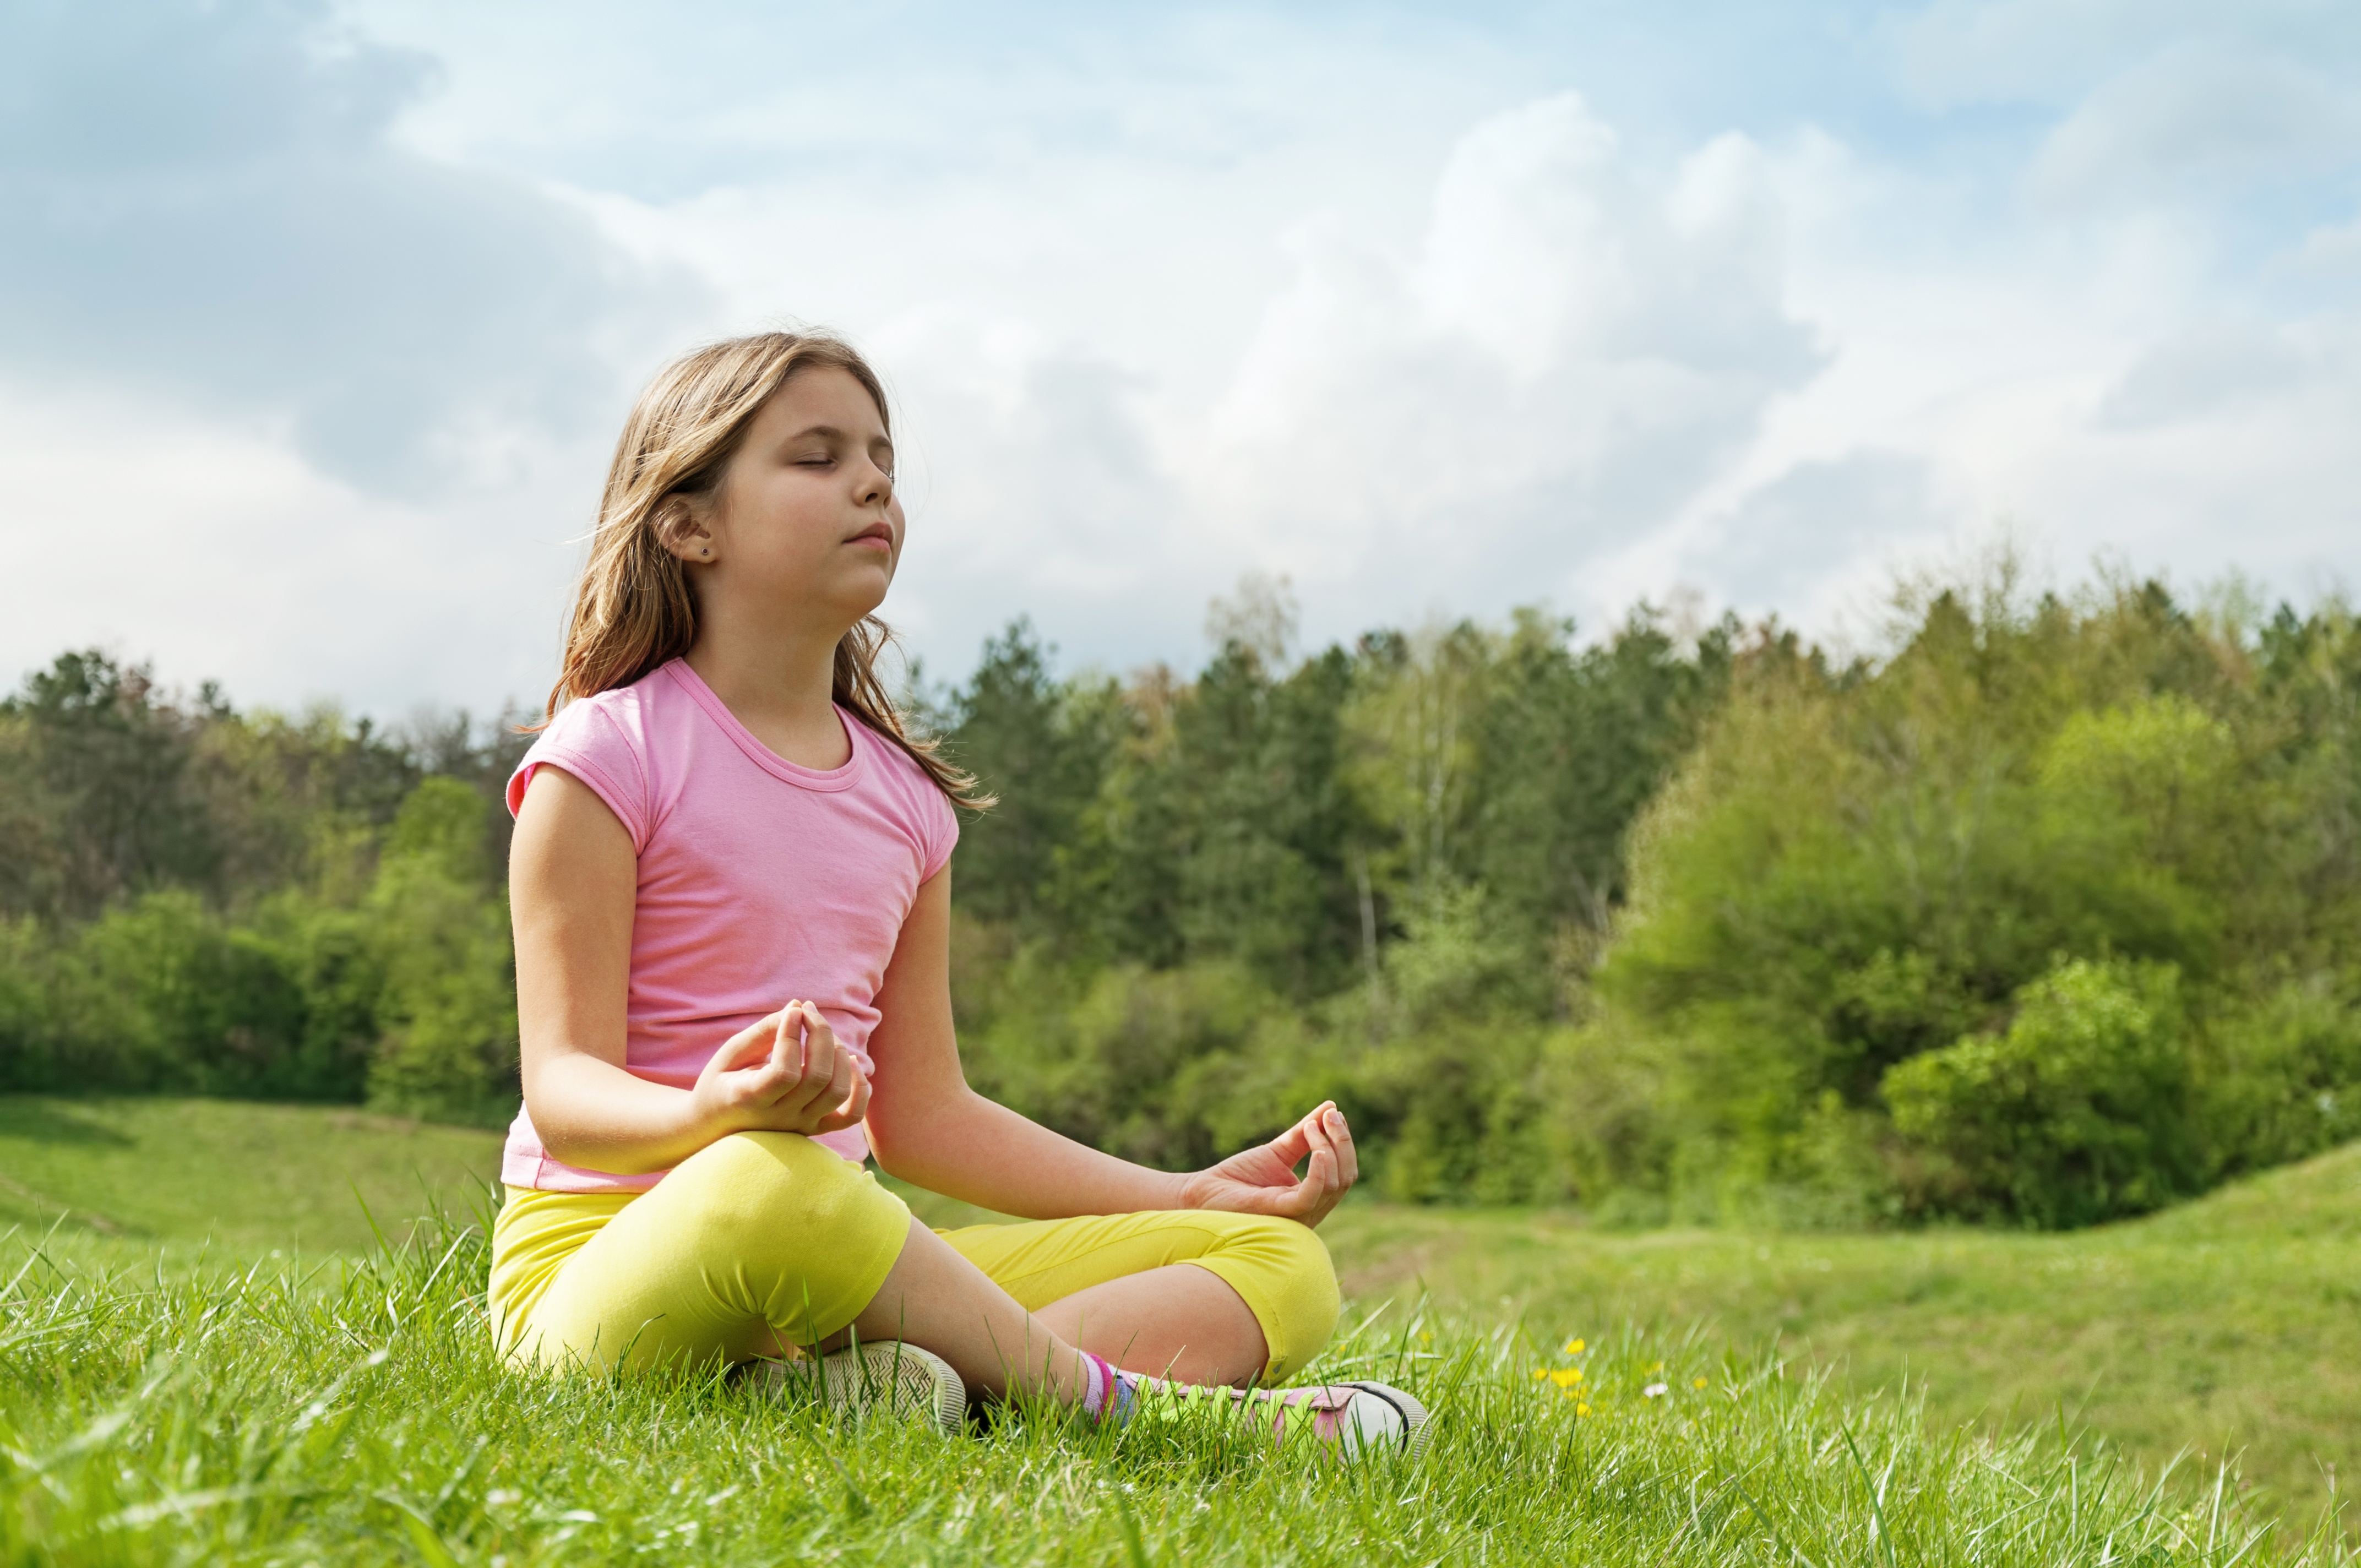 breathing exercise involving inhaling and exhaling